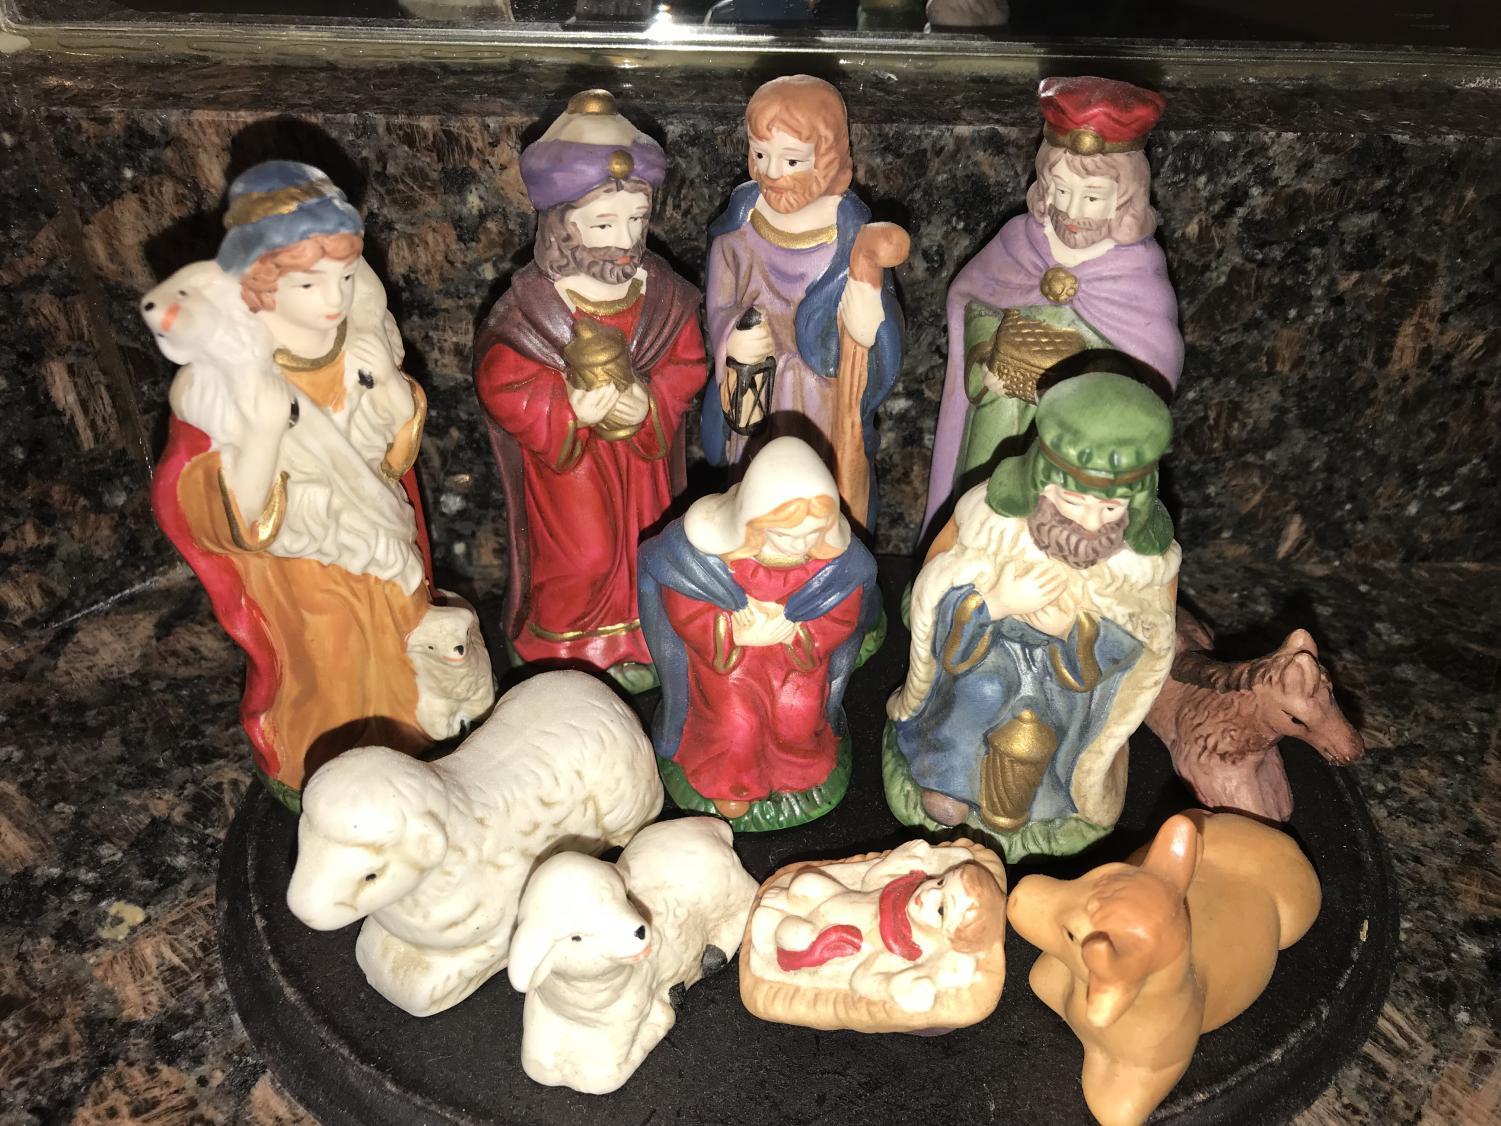 Nativity scene. Many religious symbols are not allowed in schools.